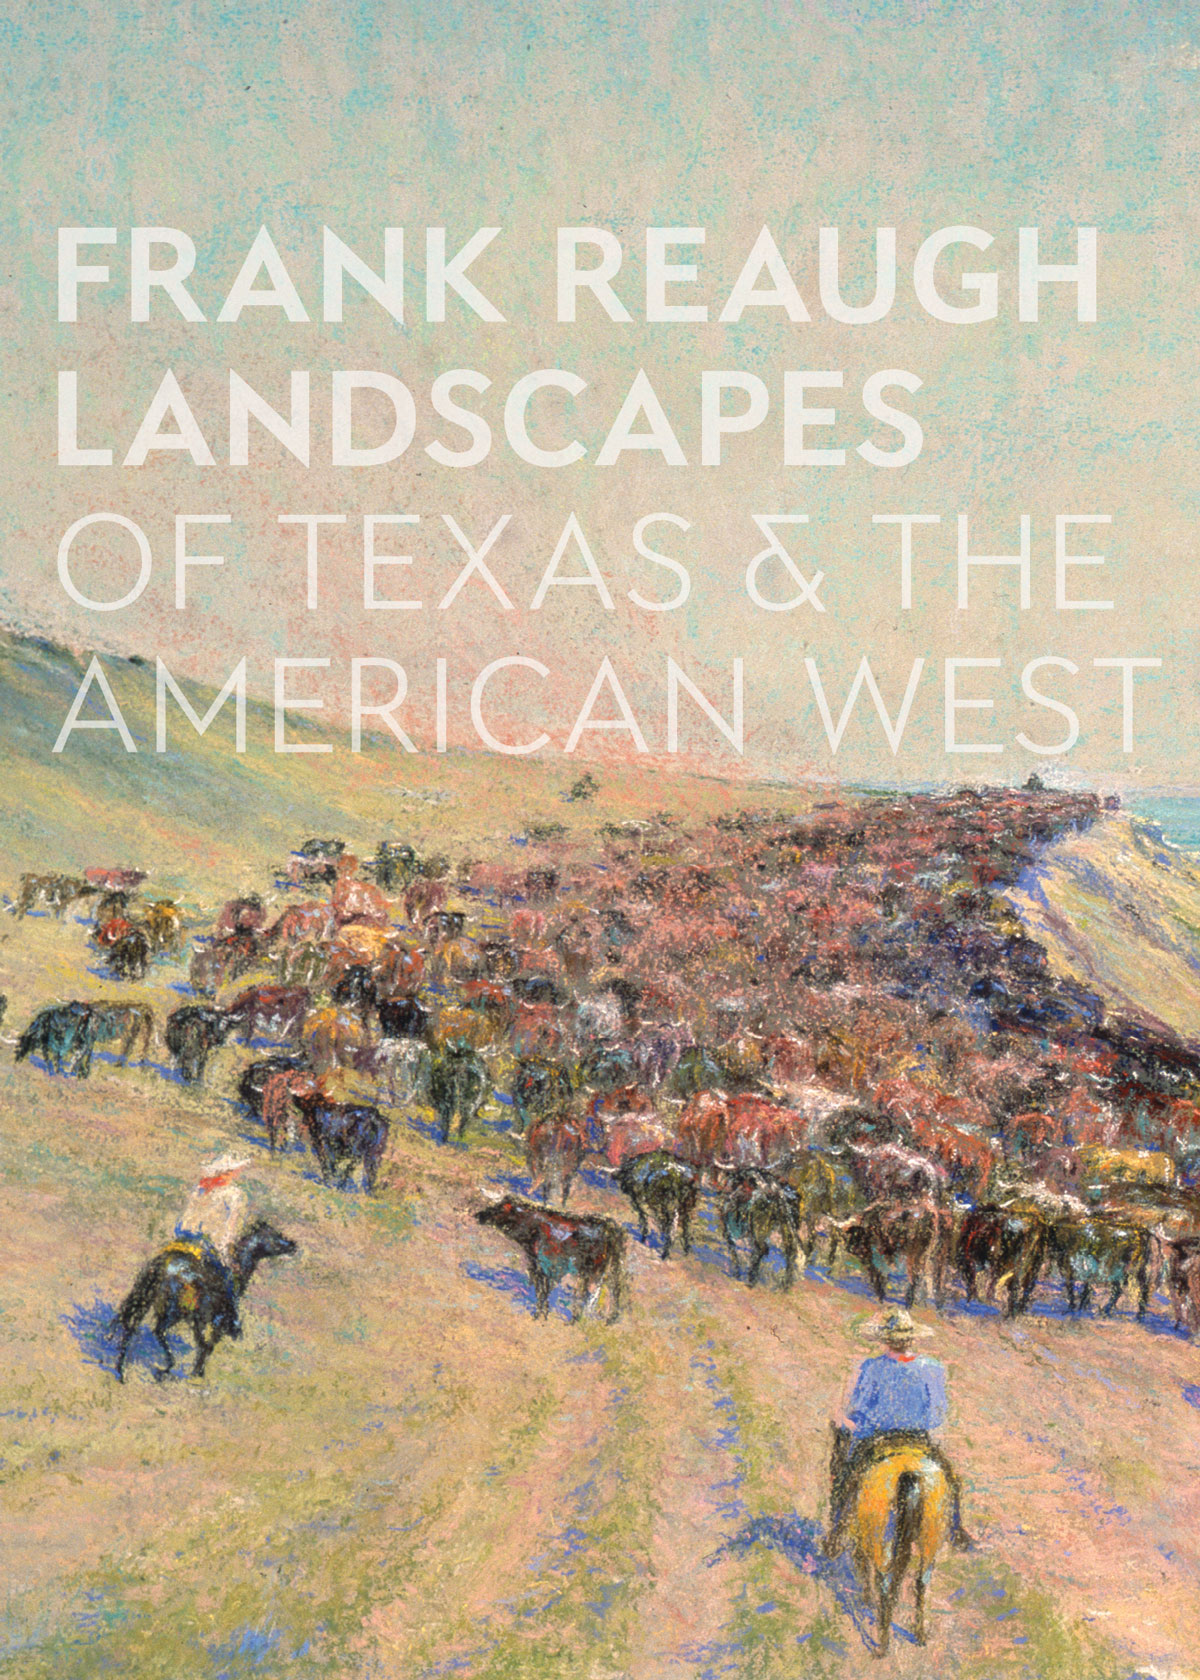 Frank Reaugh: Landscapes of Texas and the American West graphic identity.